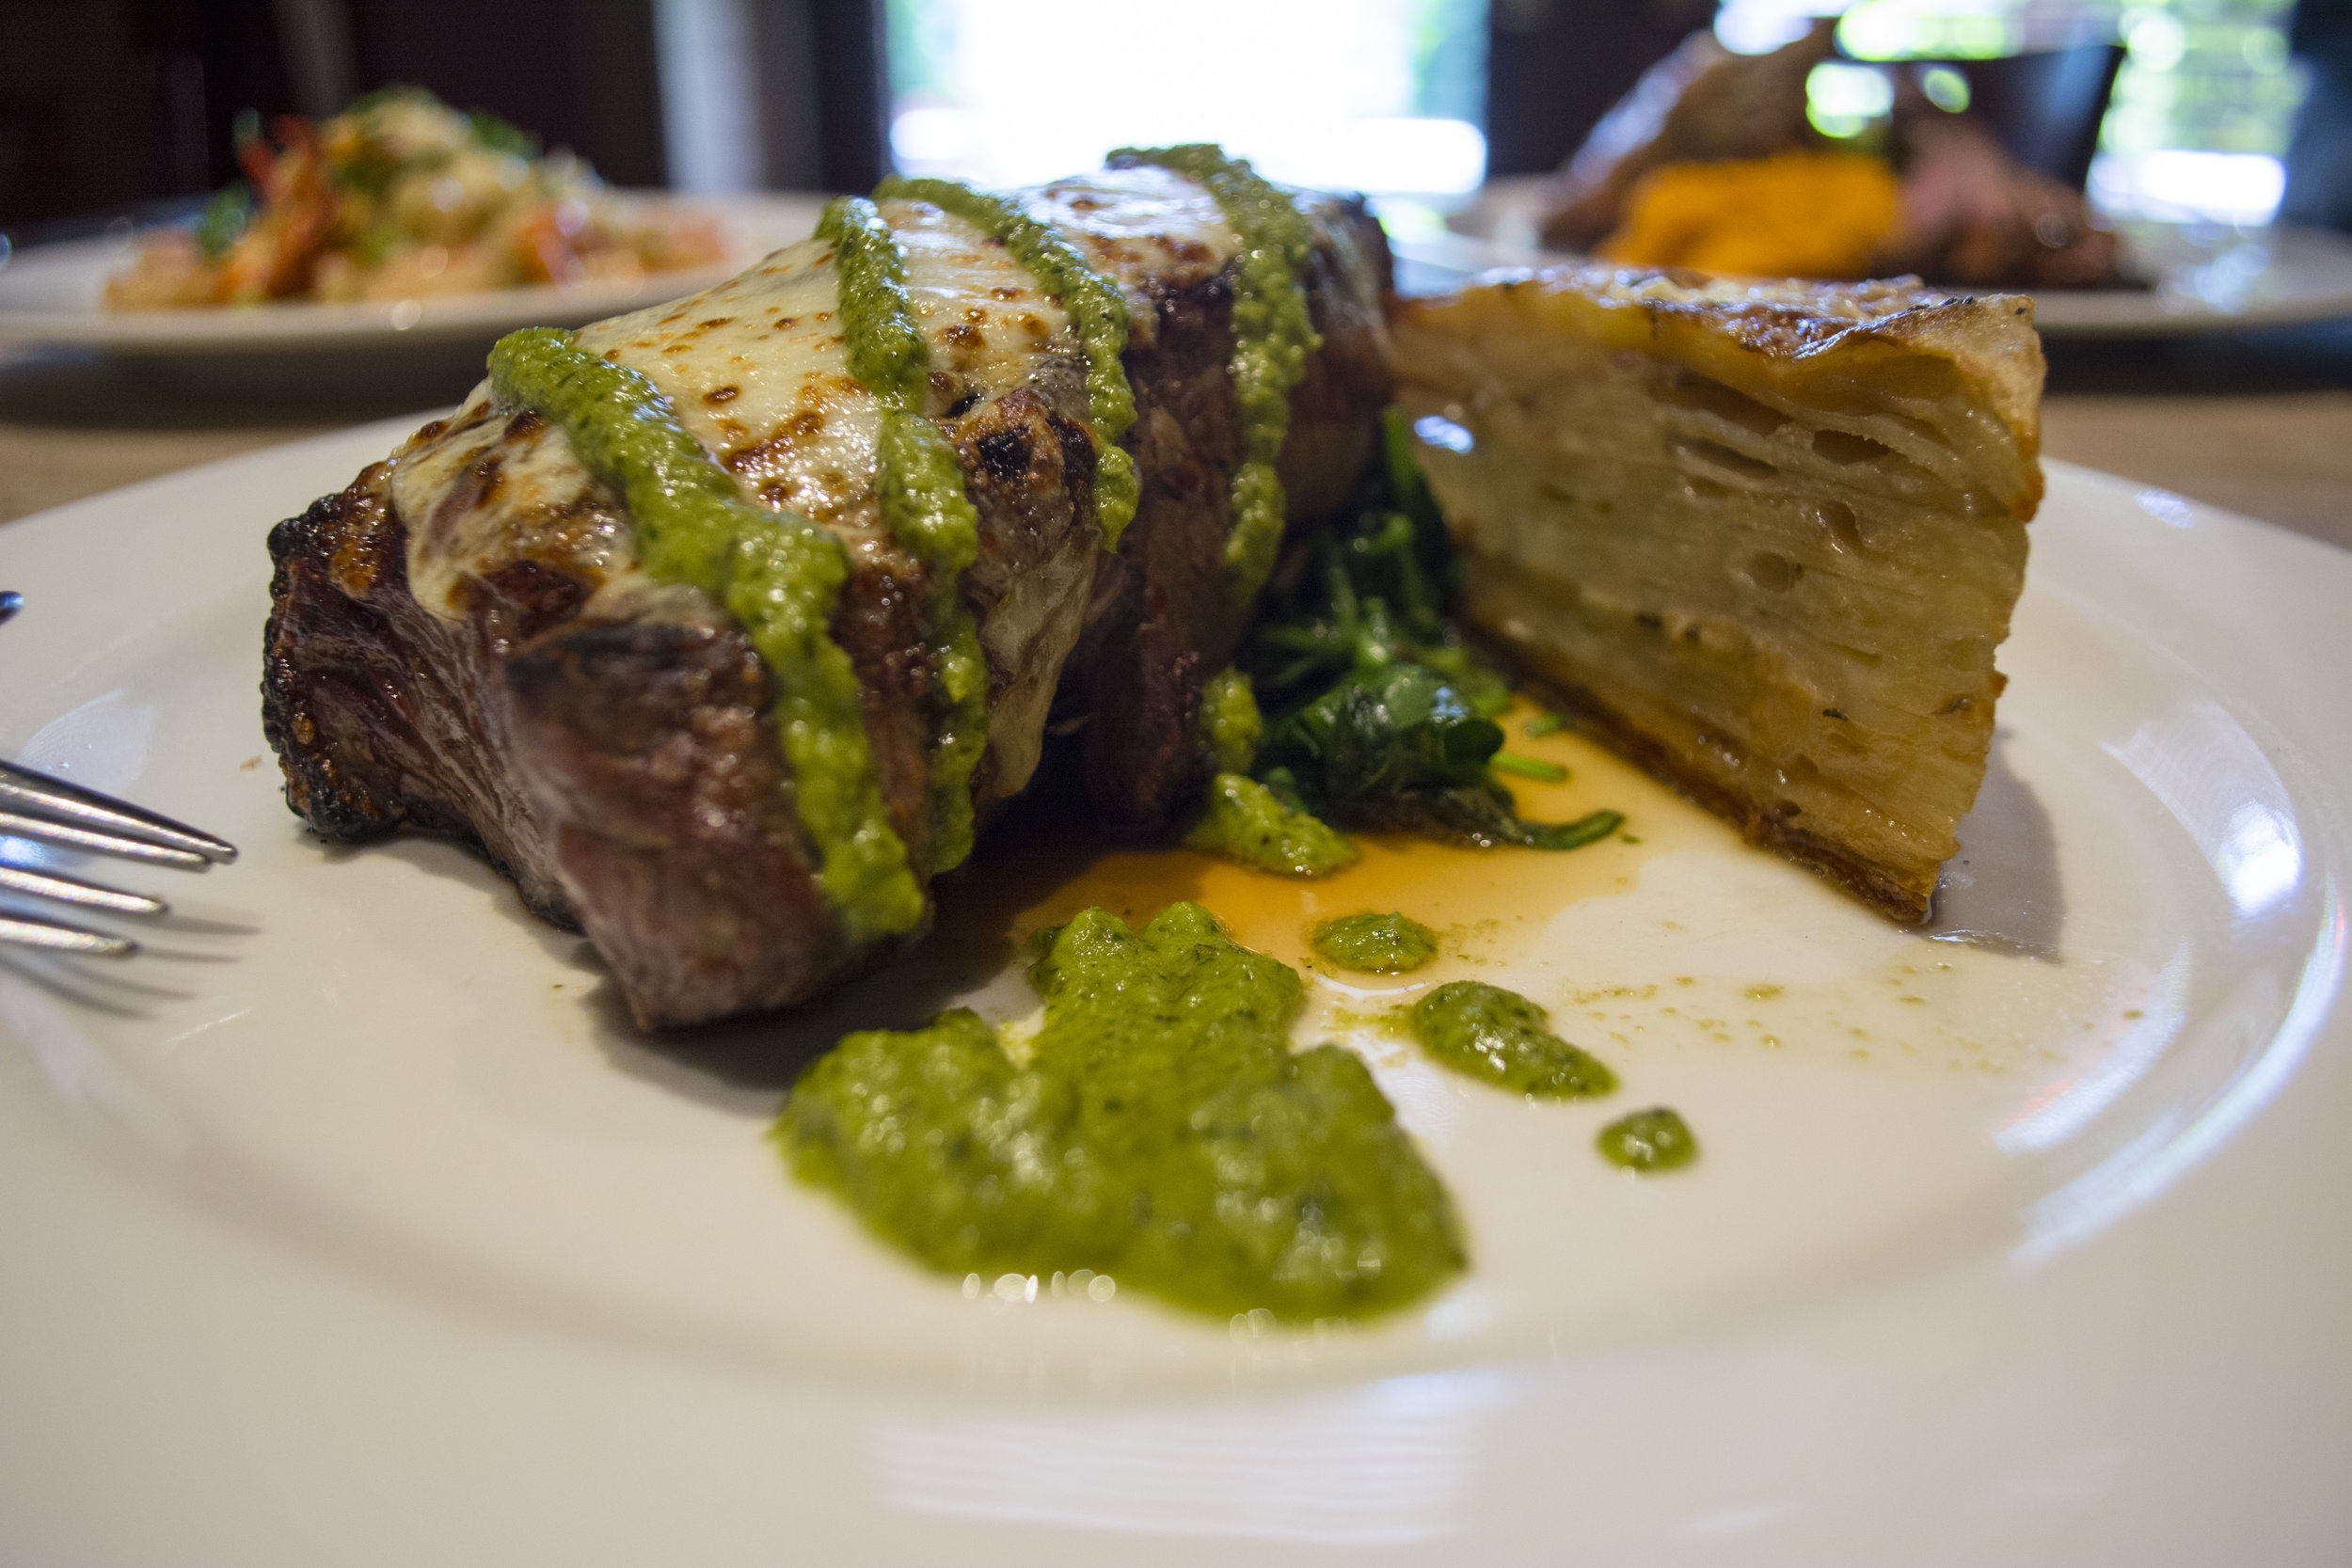 The creative, yet classic Dry Aged NY Strip steak is topped with cheese and chimichurri sauce paired with a side of potato au gratin and sauteed spinach.